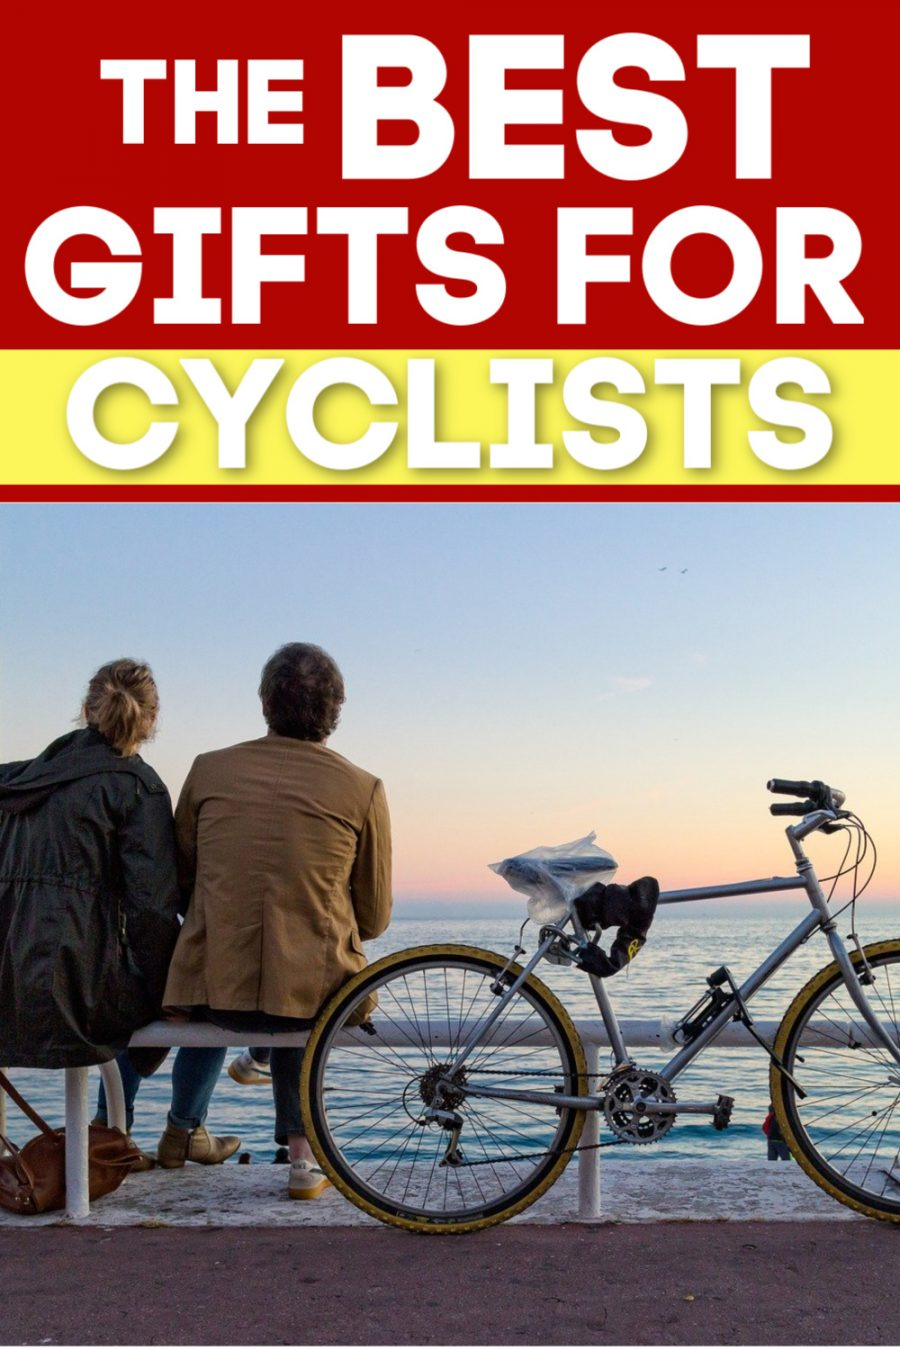 The Best Gifts for Cyclists